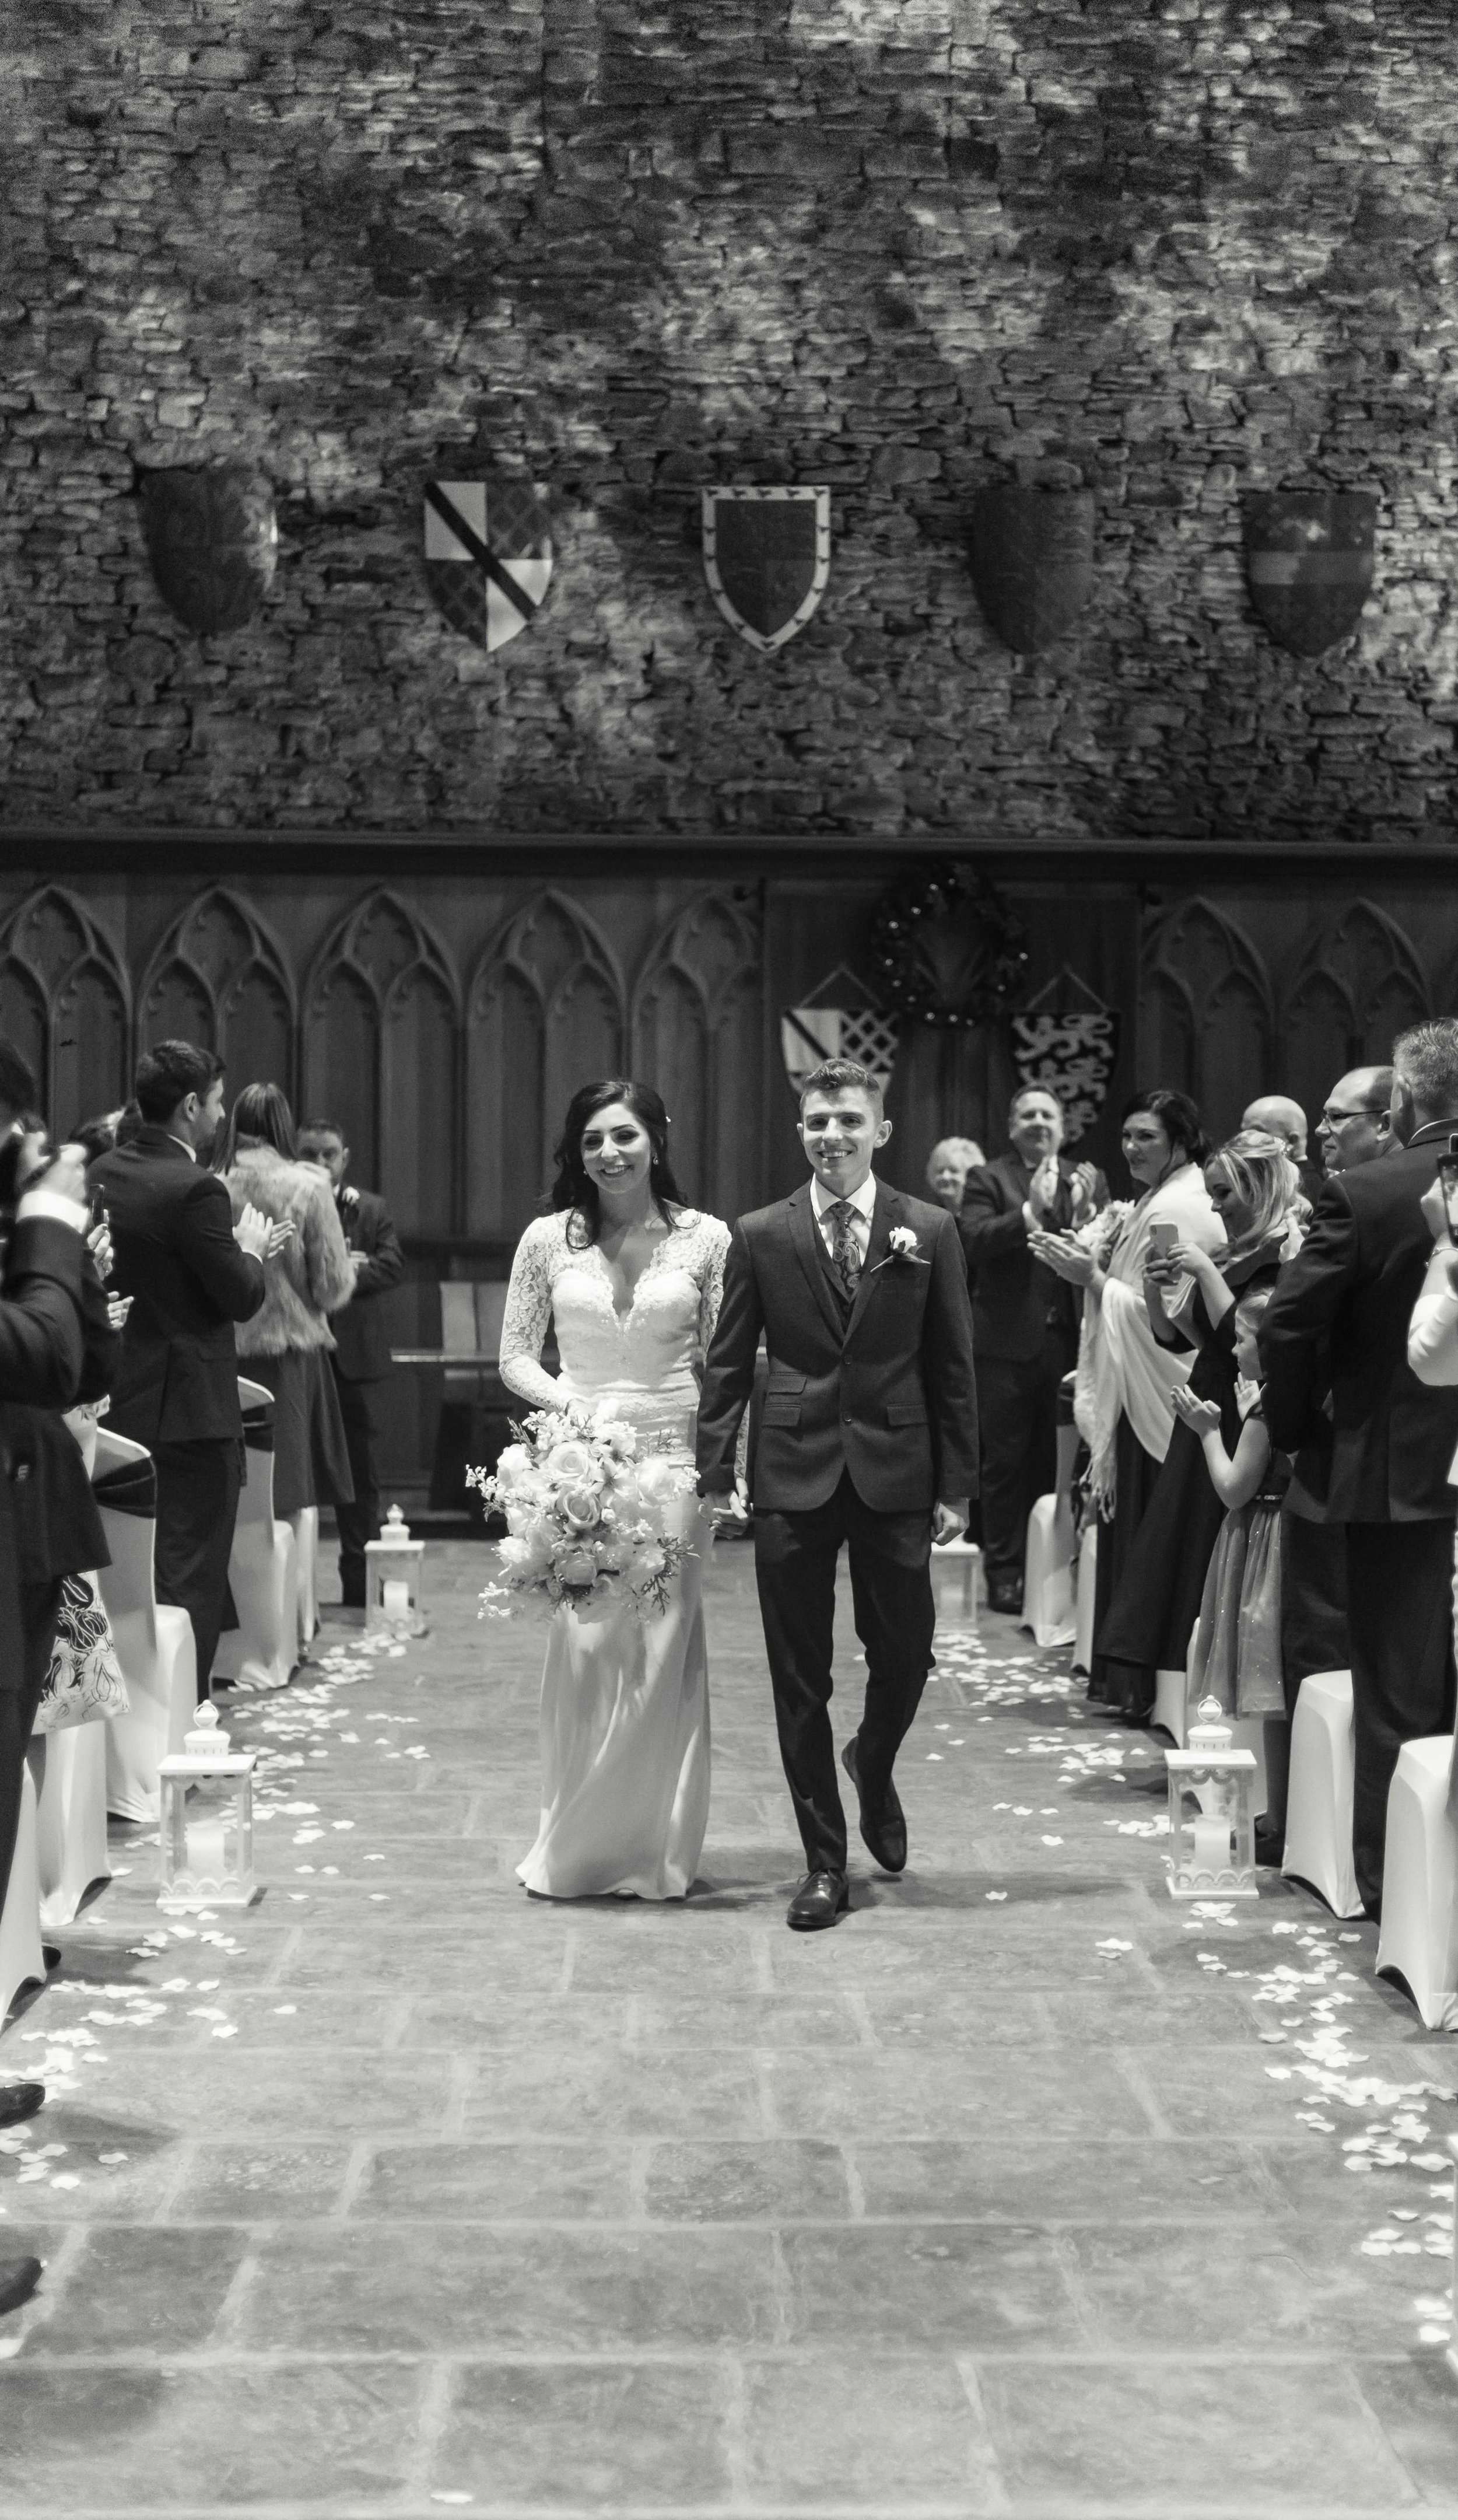 Bride and groom walking up the aisle leaving the wedding ceremony